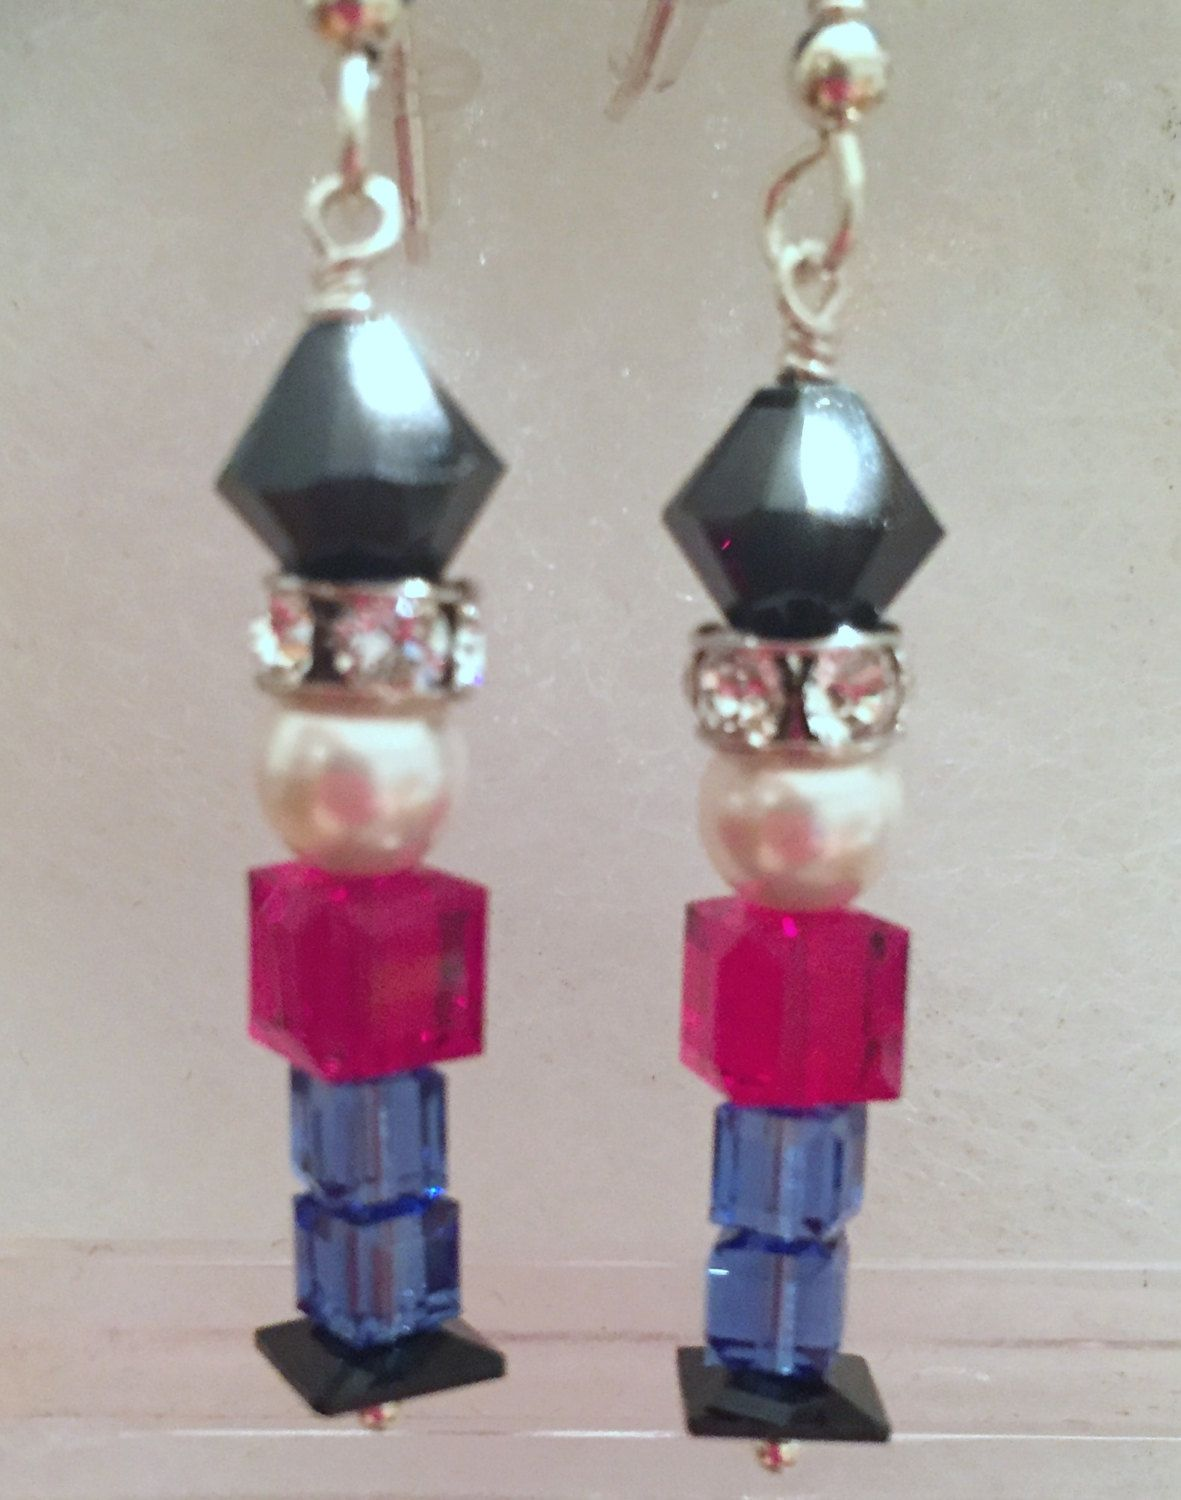 583d5c8ad Swarovski Crystal Nutcracker, Toy Soldier Earrings - Celebrate the Holidays  in Style, SRAJD by CreationsbyCynthia1 on Etsy